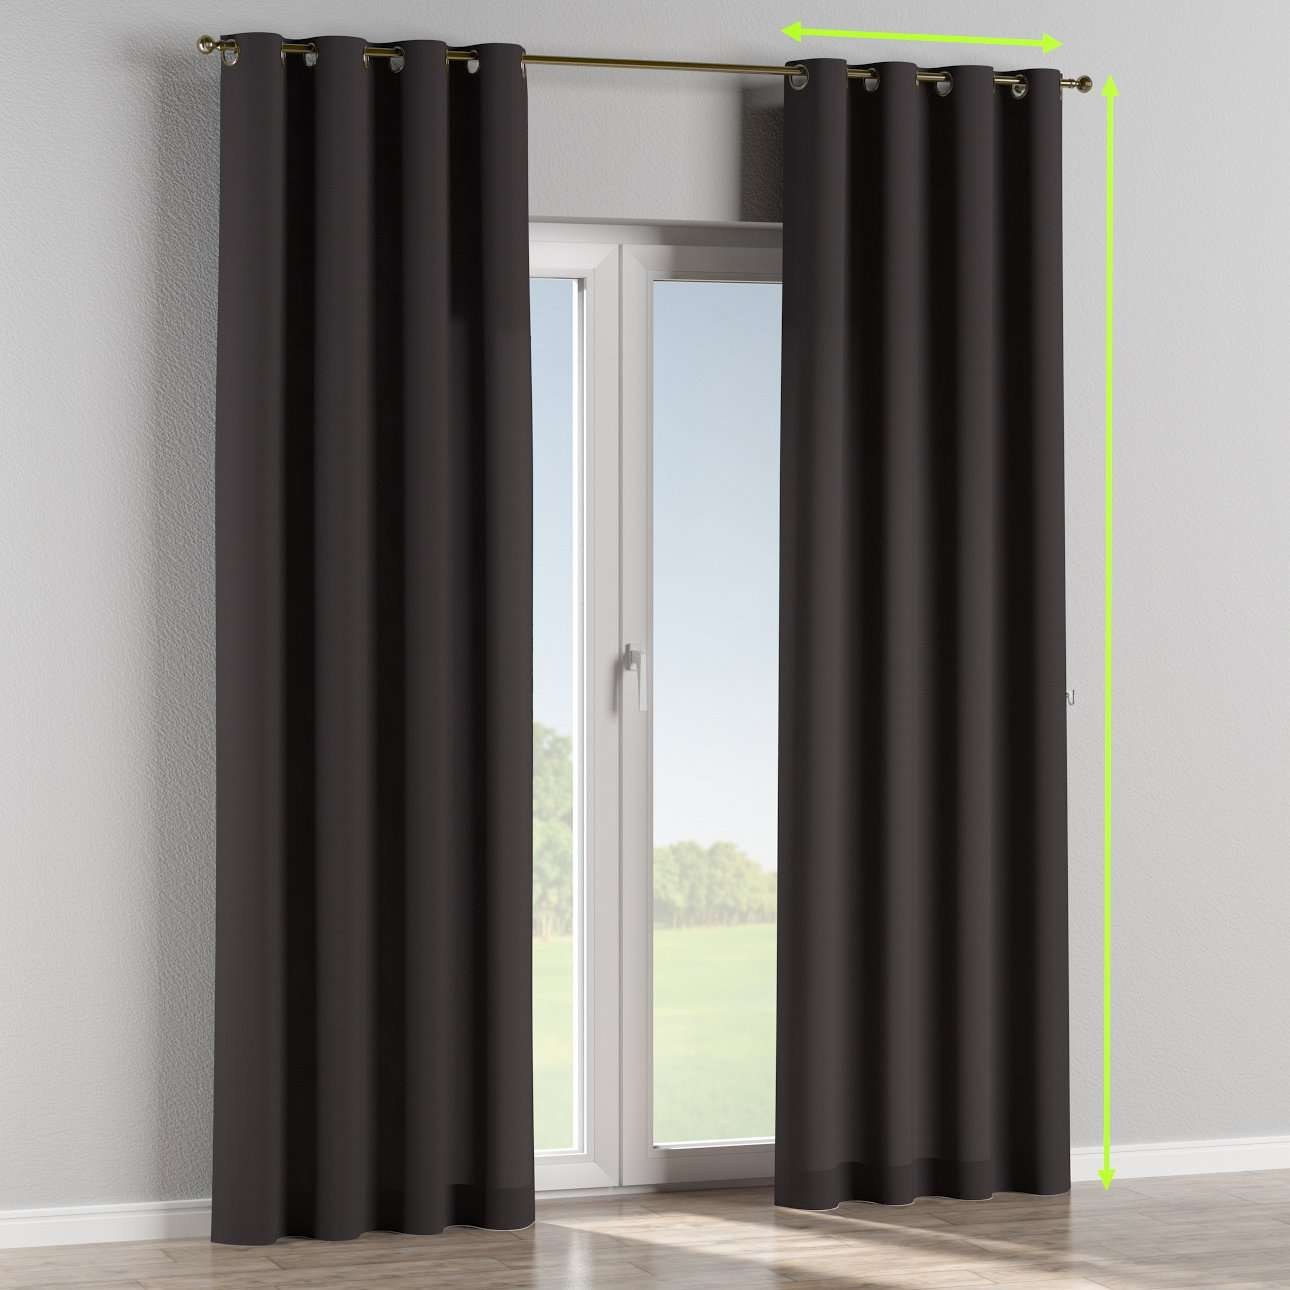 Eyelet curtain in collection Panama Cotton, fabric: 702-09